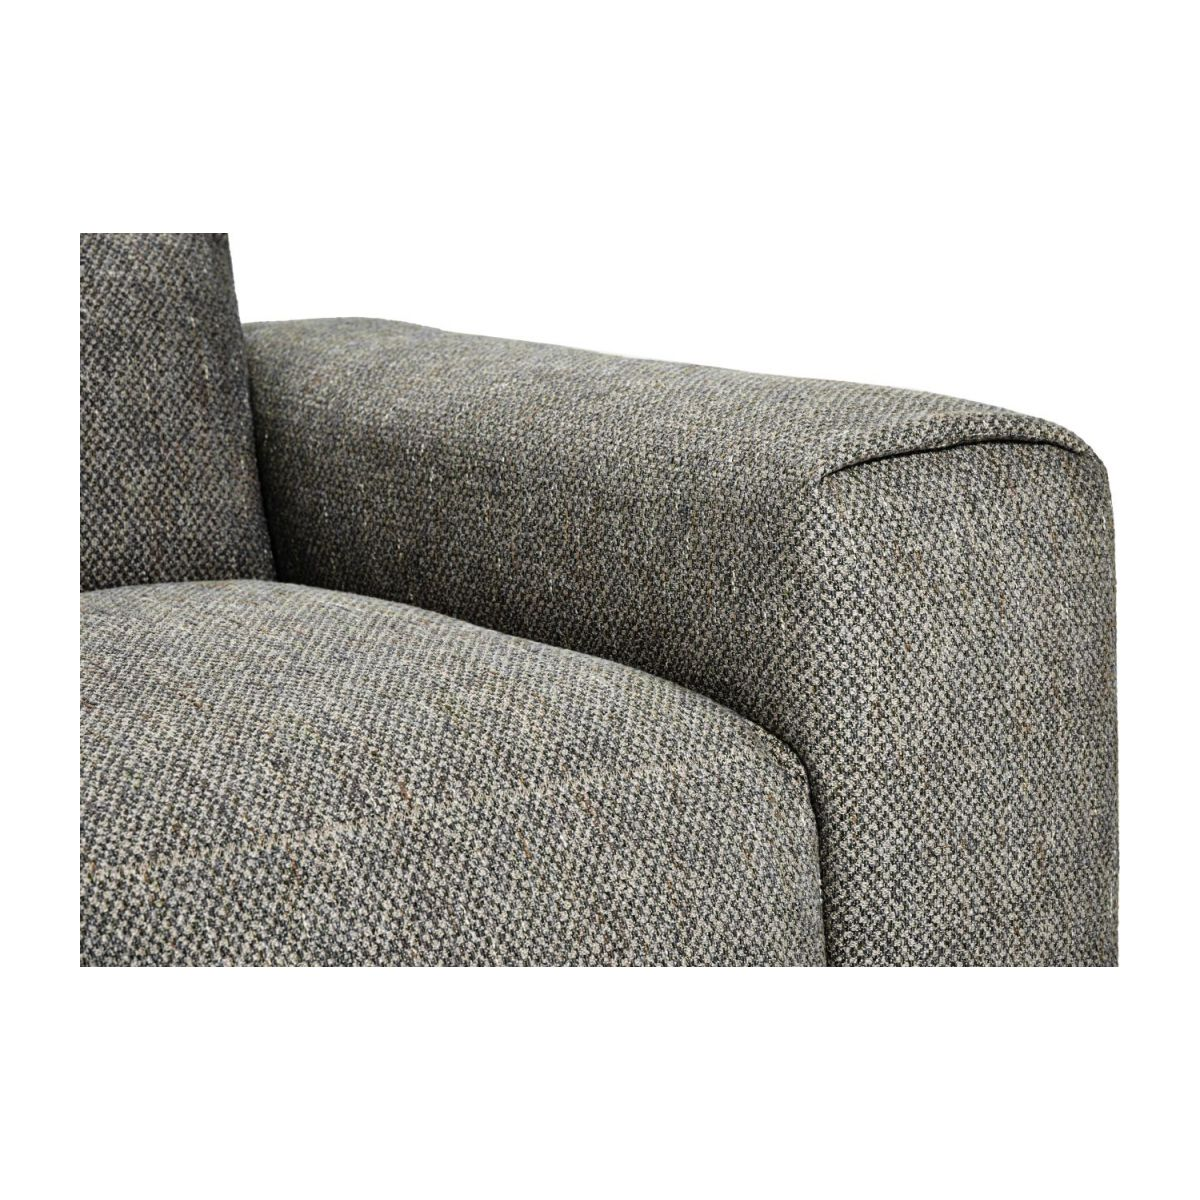 4-seter sofa, sort n°9